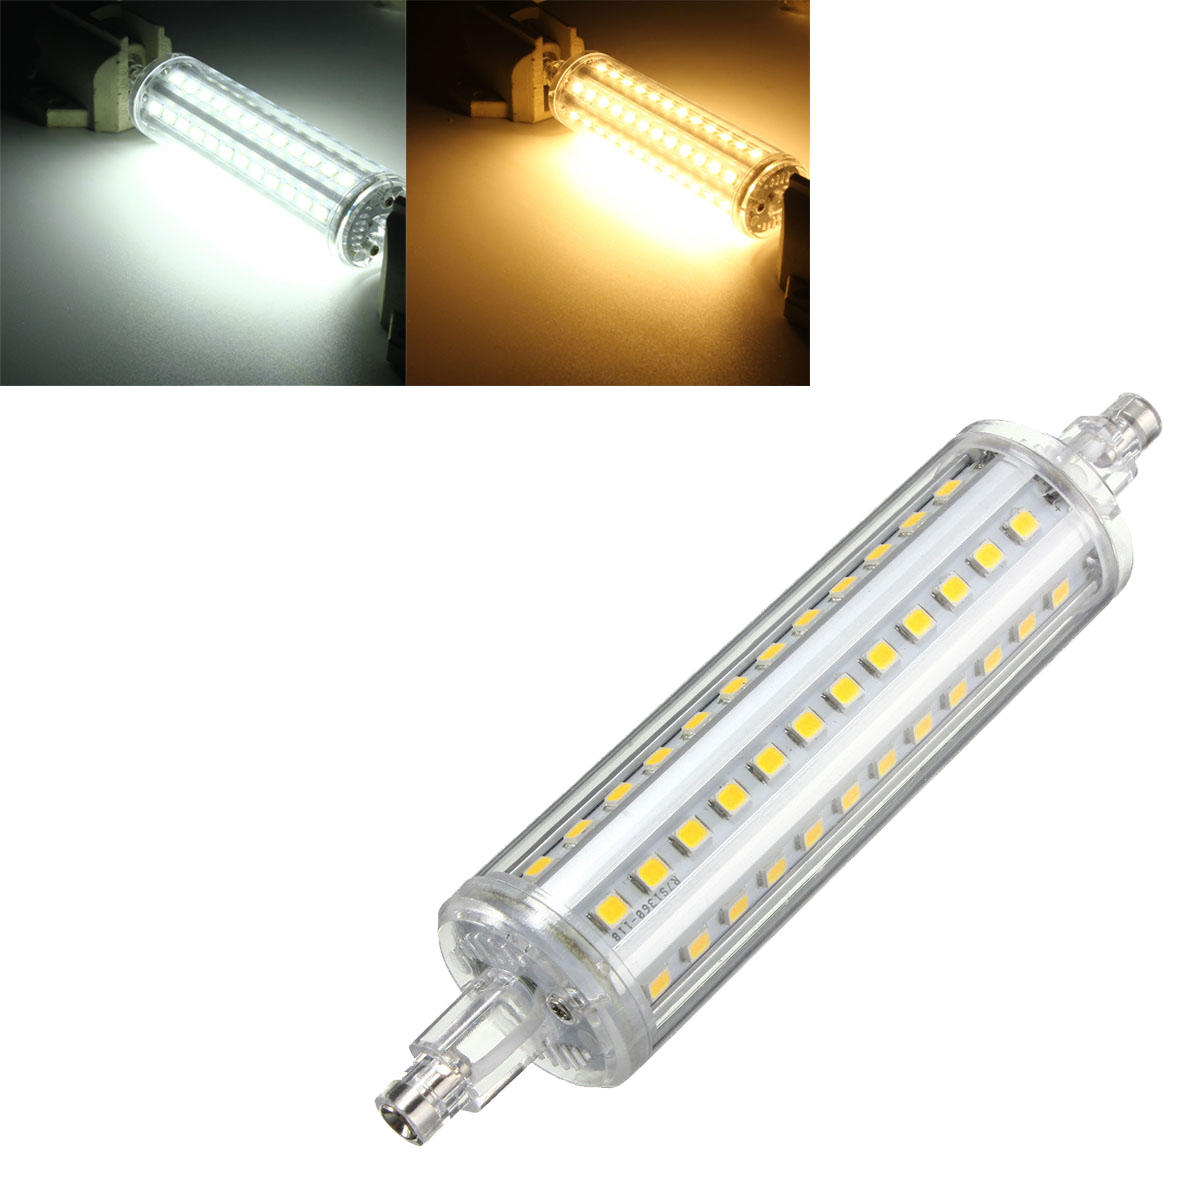 R7s Led Dimmable Dimmable R7s 8w 118mm 72 Smd 2835 Led Pure White Warm White Corn Light Lamp Bulb Ac85 265v